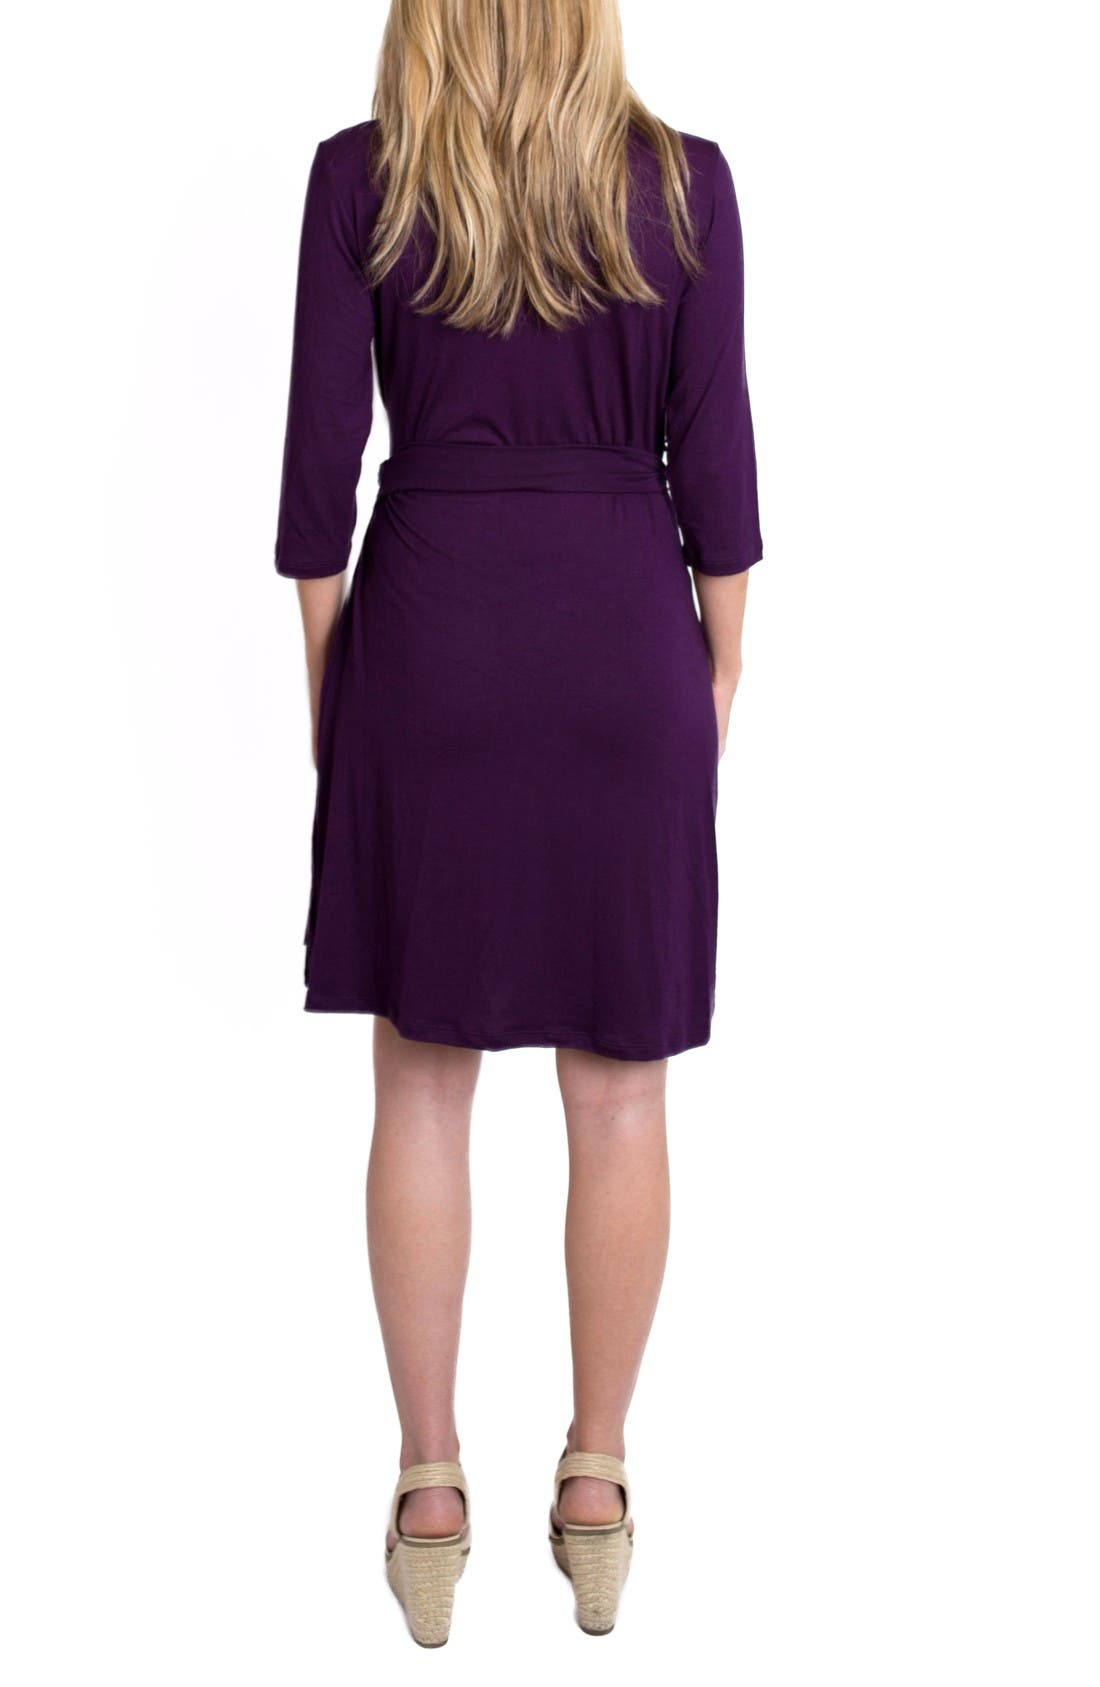 'Whimsical' Nursing Wrap Dress,                             Alternate thumbnail 2, color,                             Plum